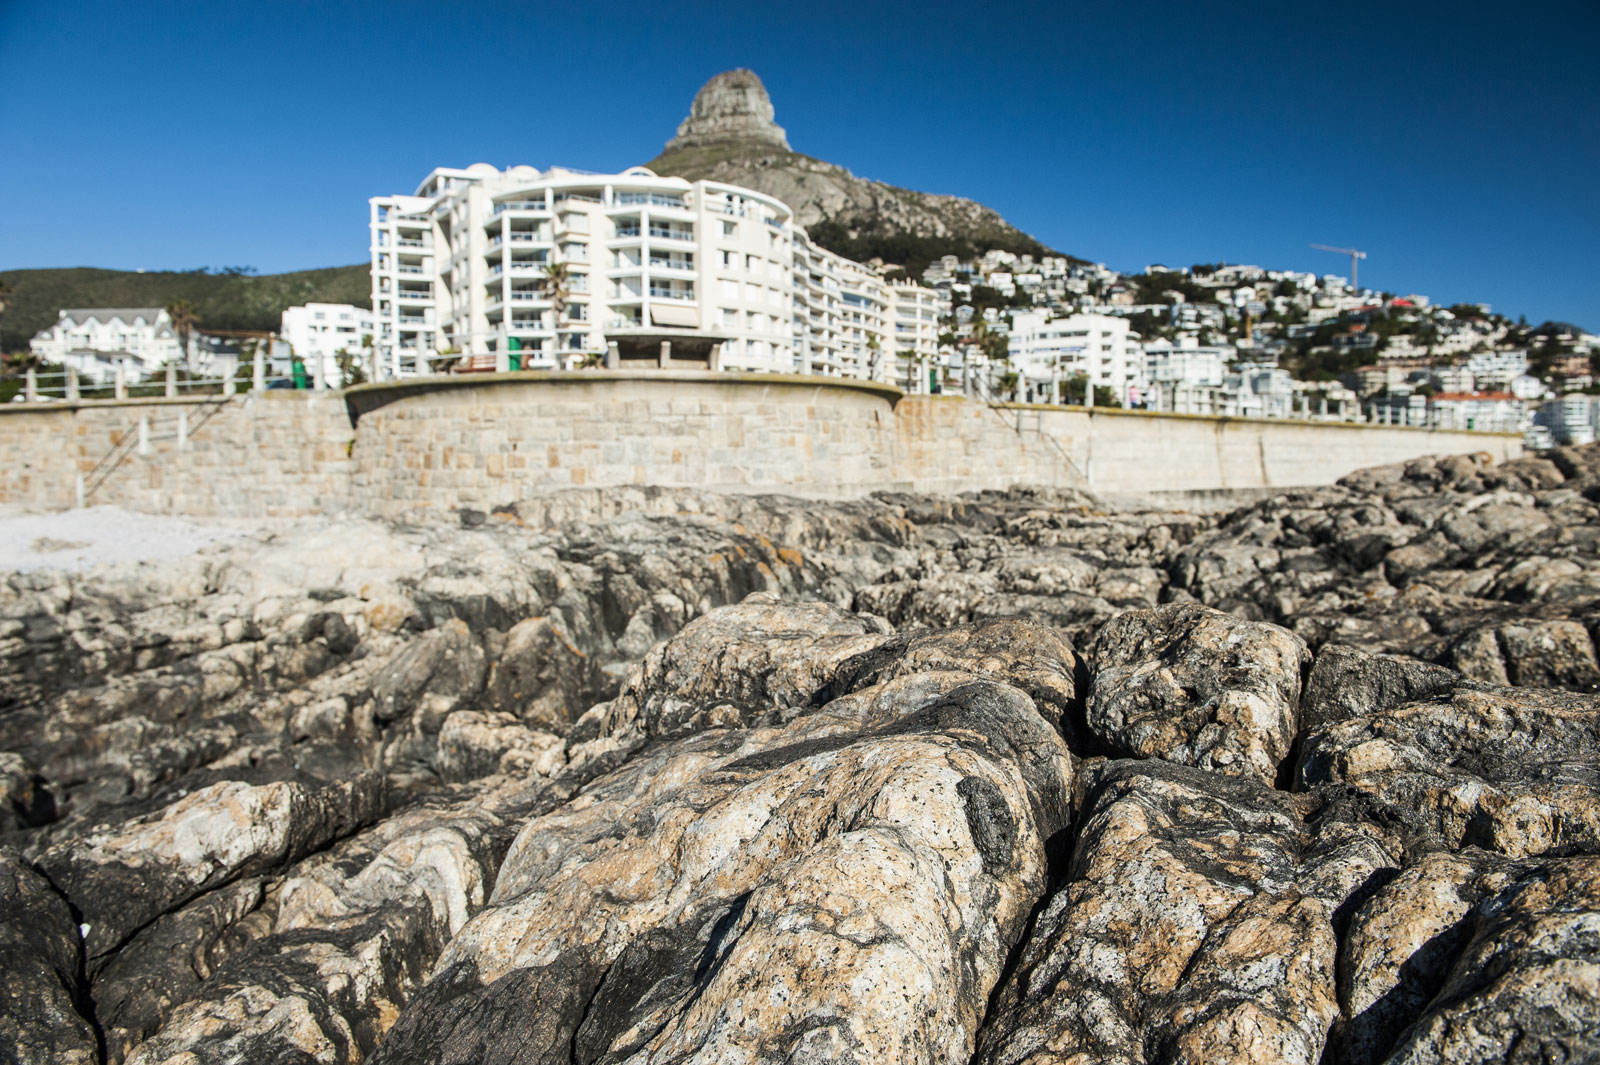 These rocks in Sea Point were visited by Charles Darwin on his epic voyage around the world in 1836 ©Justin Fox